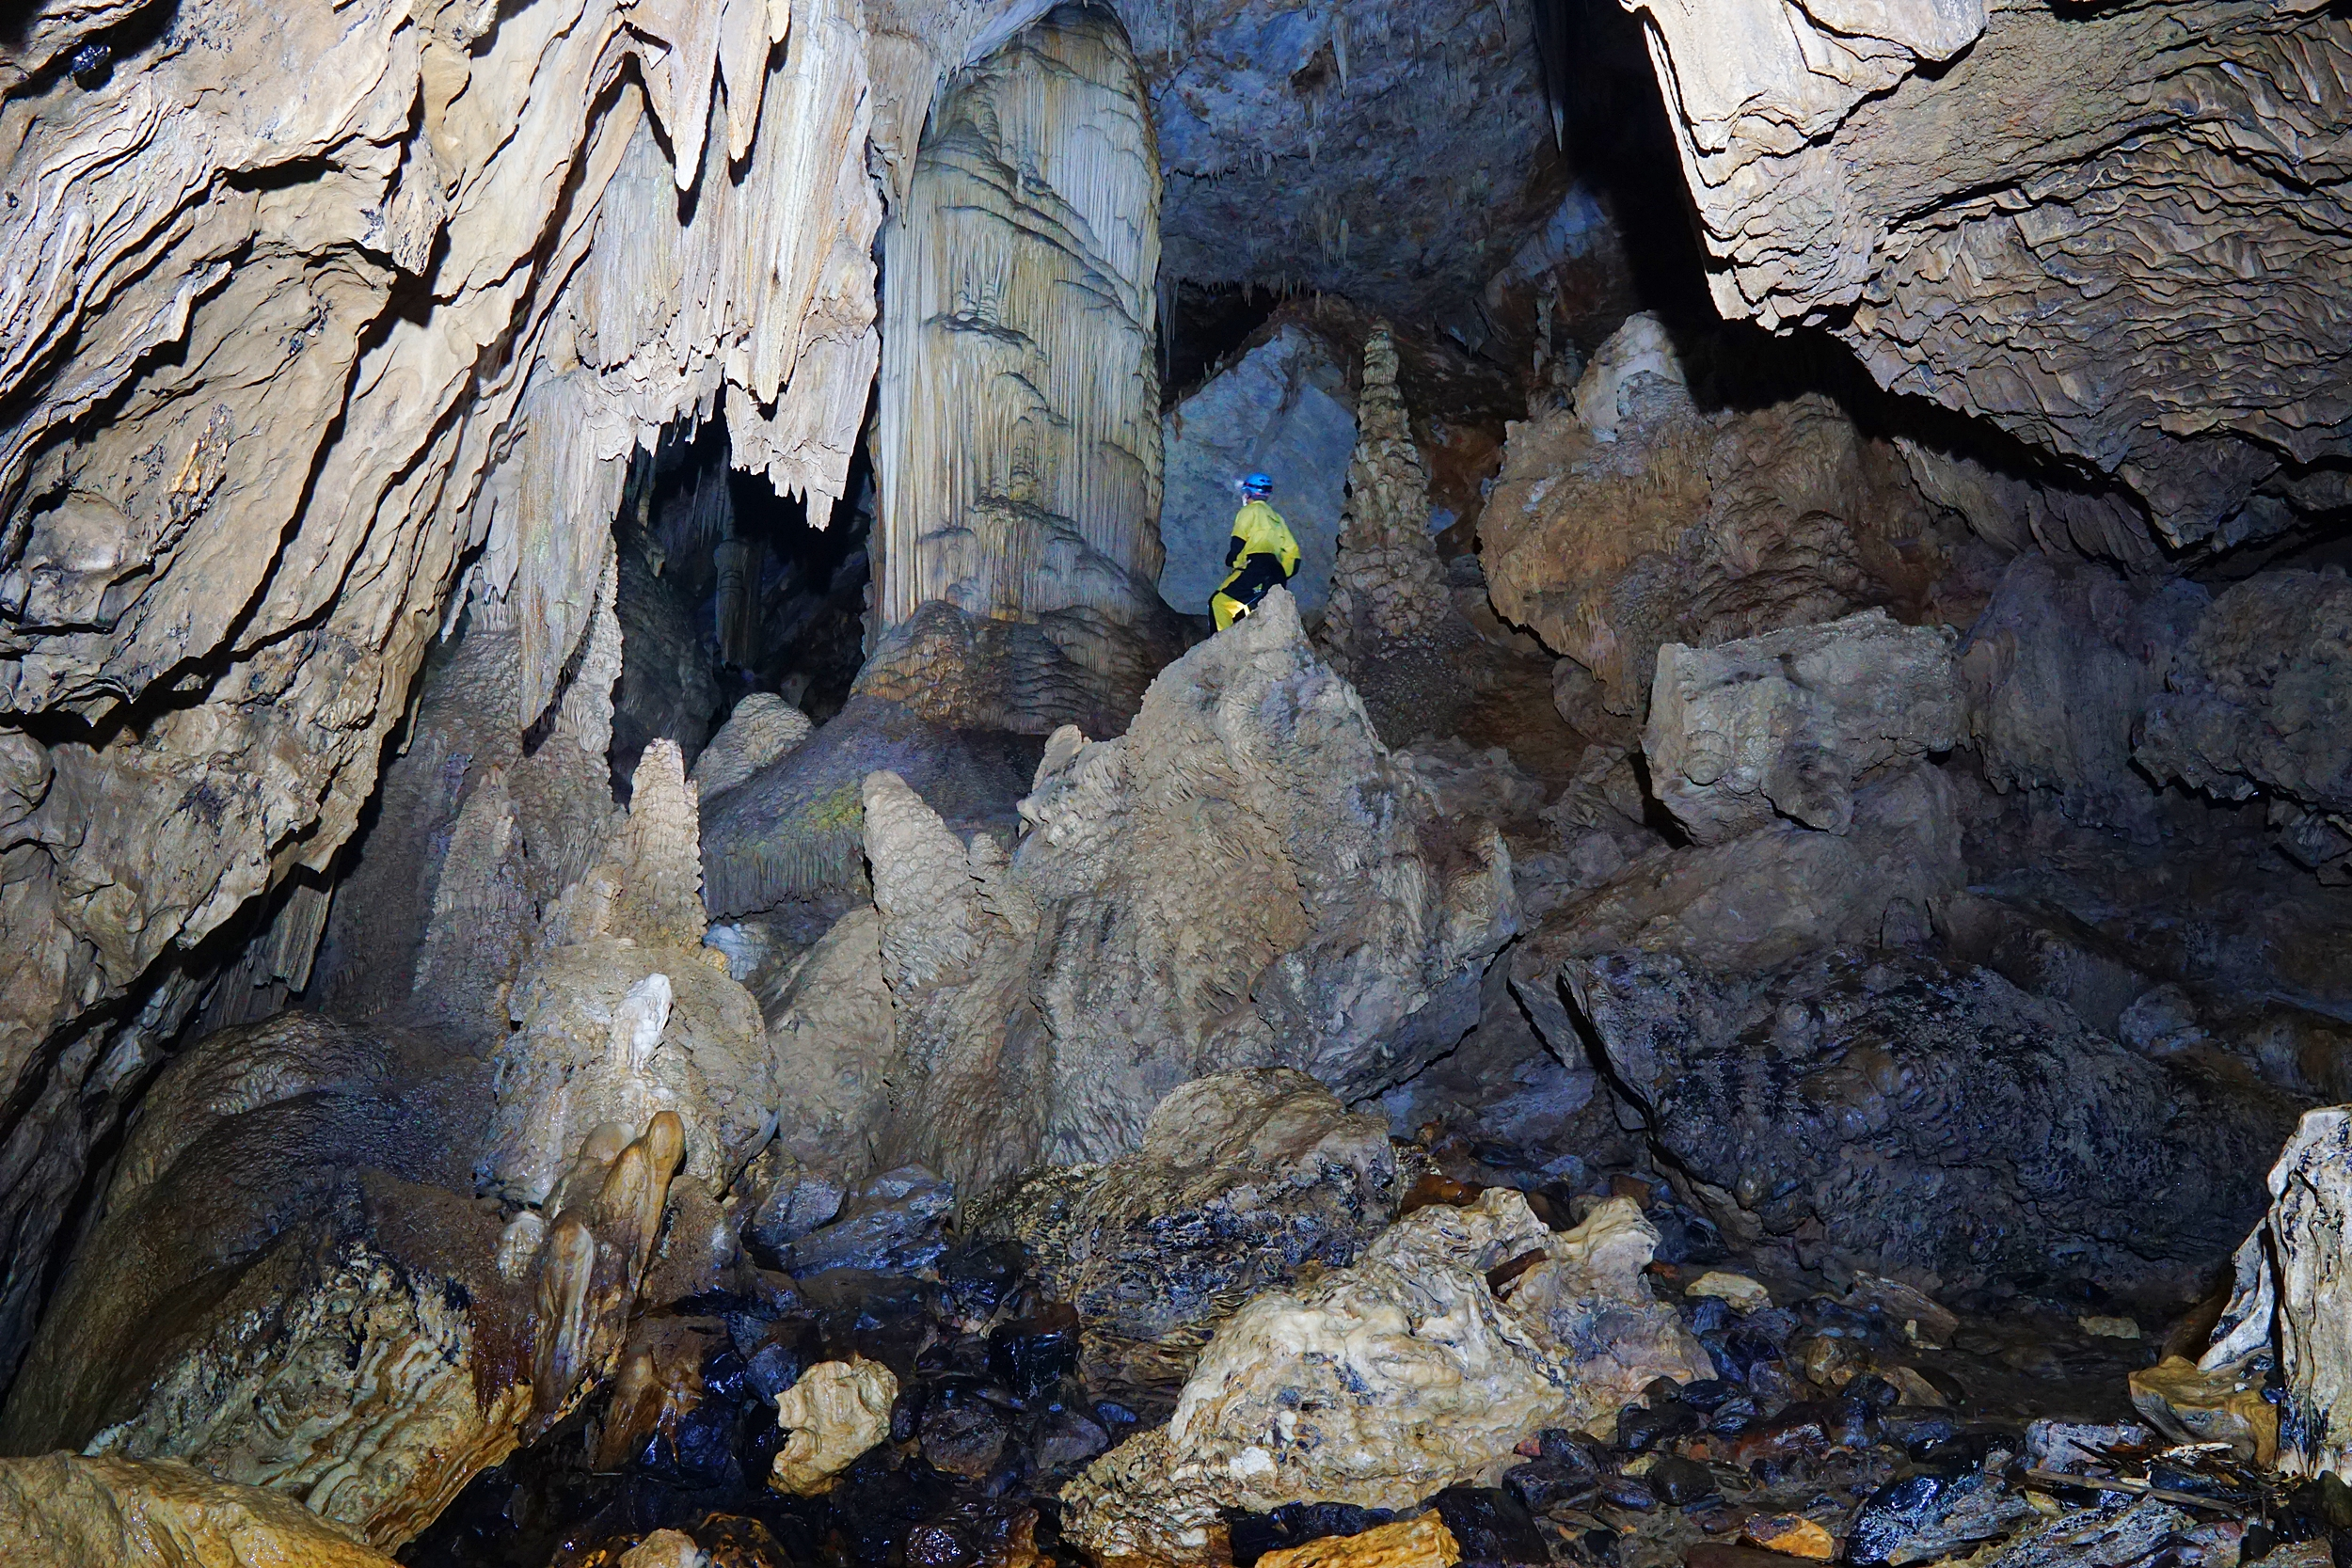 Caving in Brazil with Meandre Explo 1-b